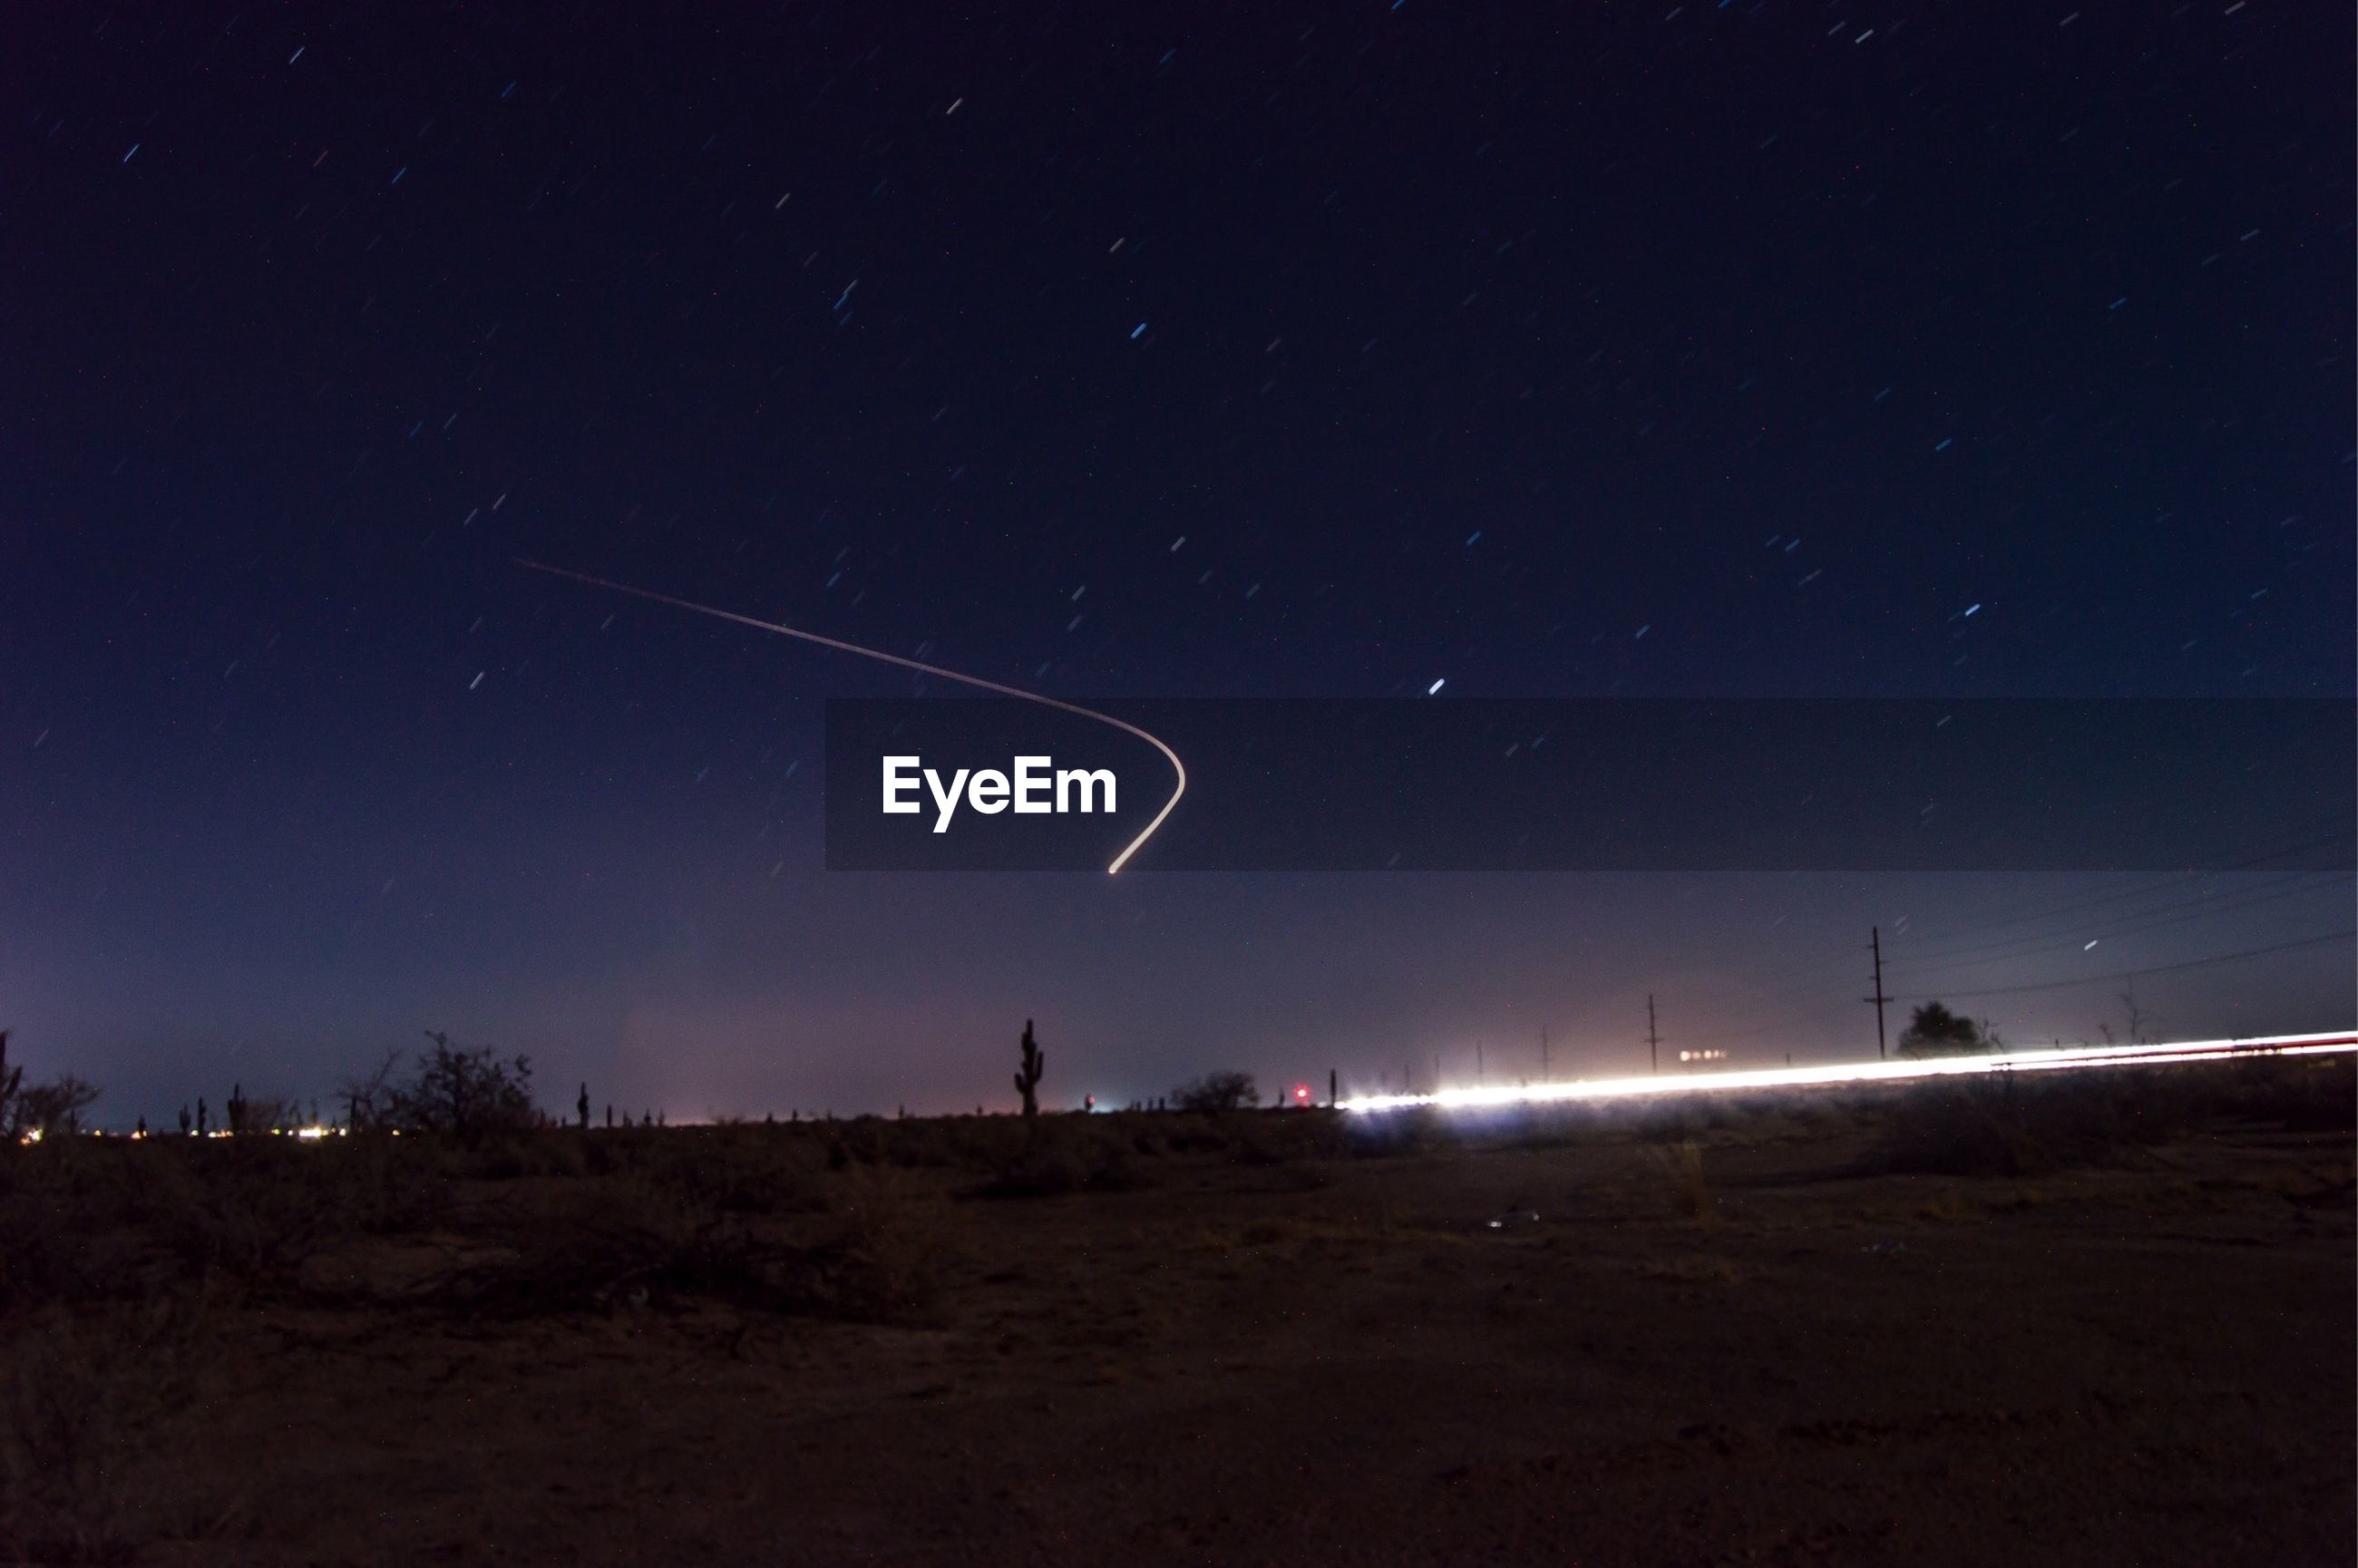 Scenic view of star trail in sky over landscape at night